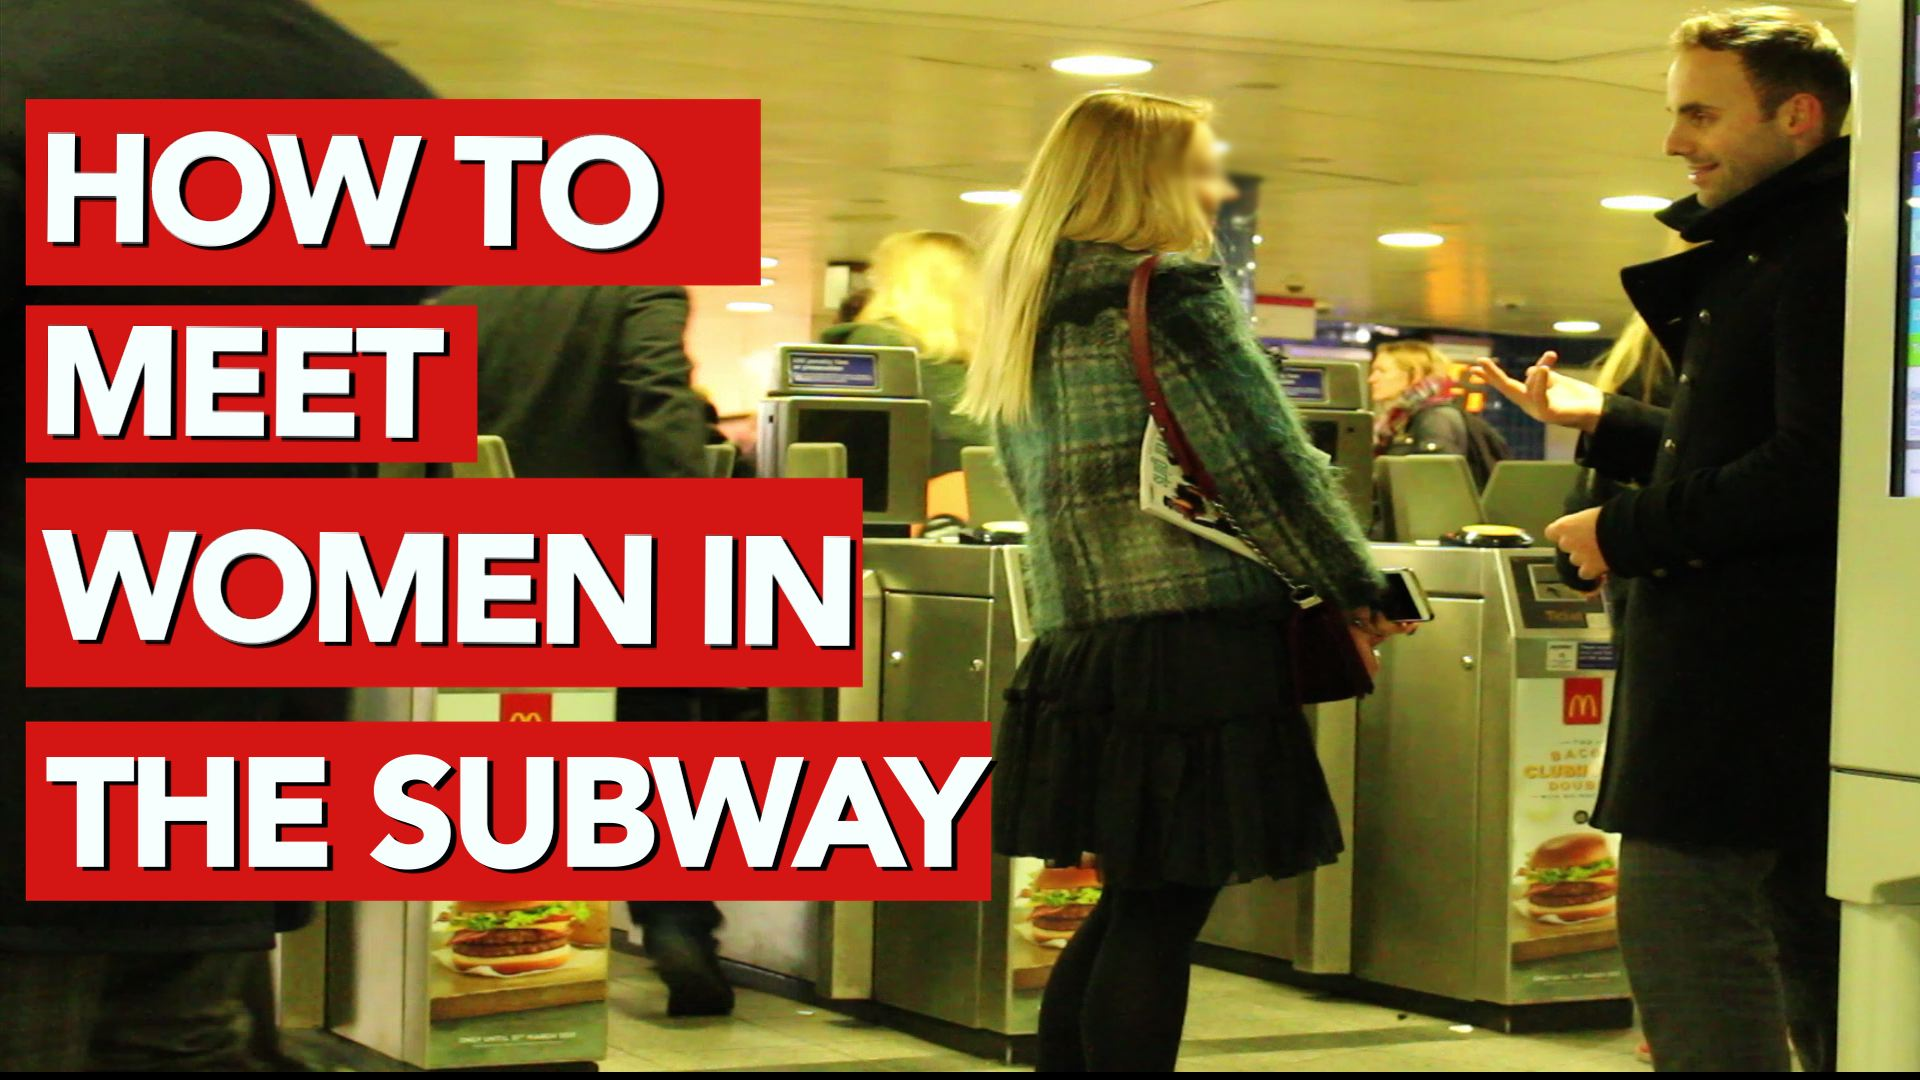 How to meet women in the subway